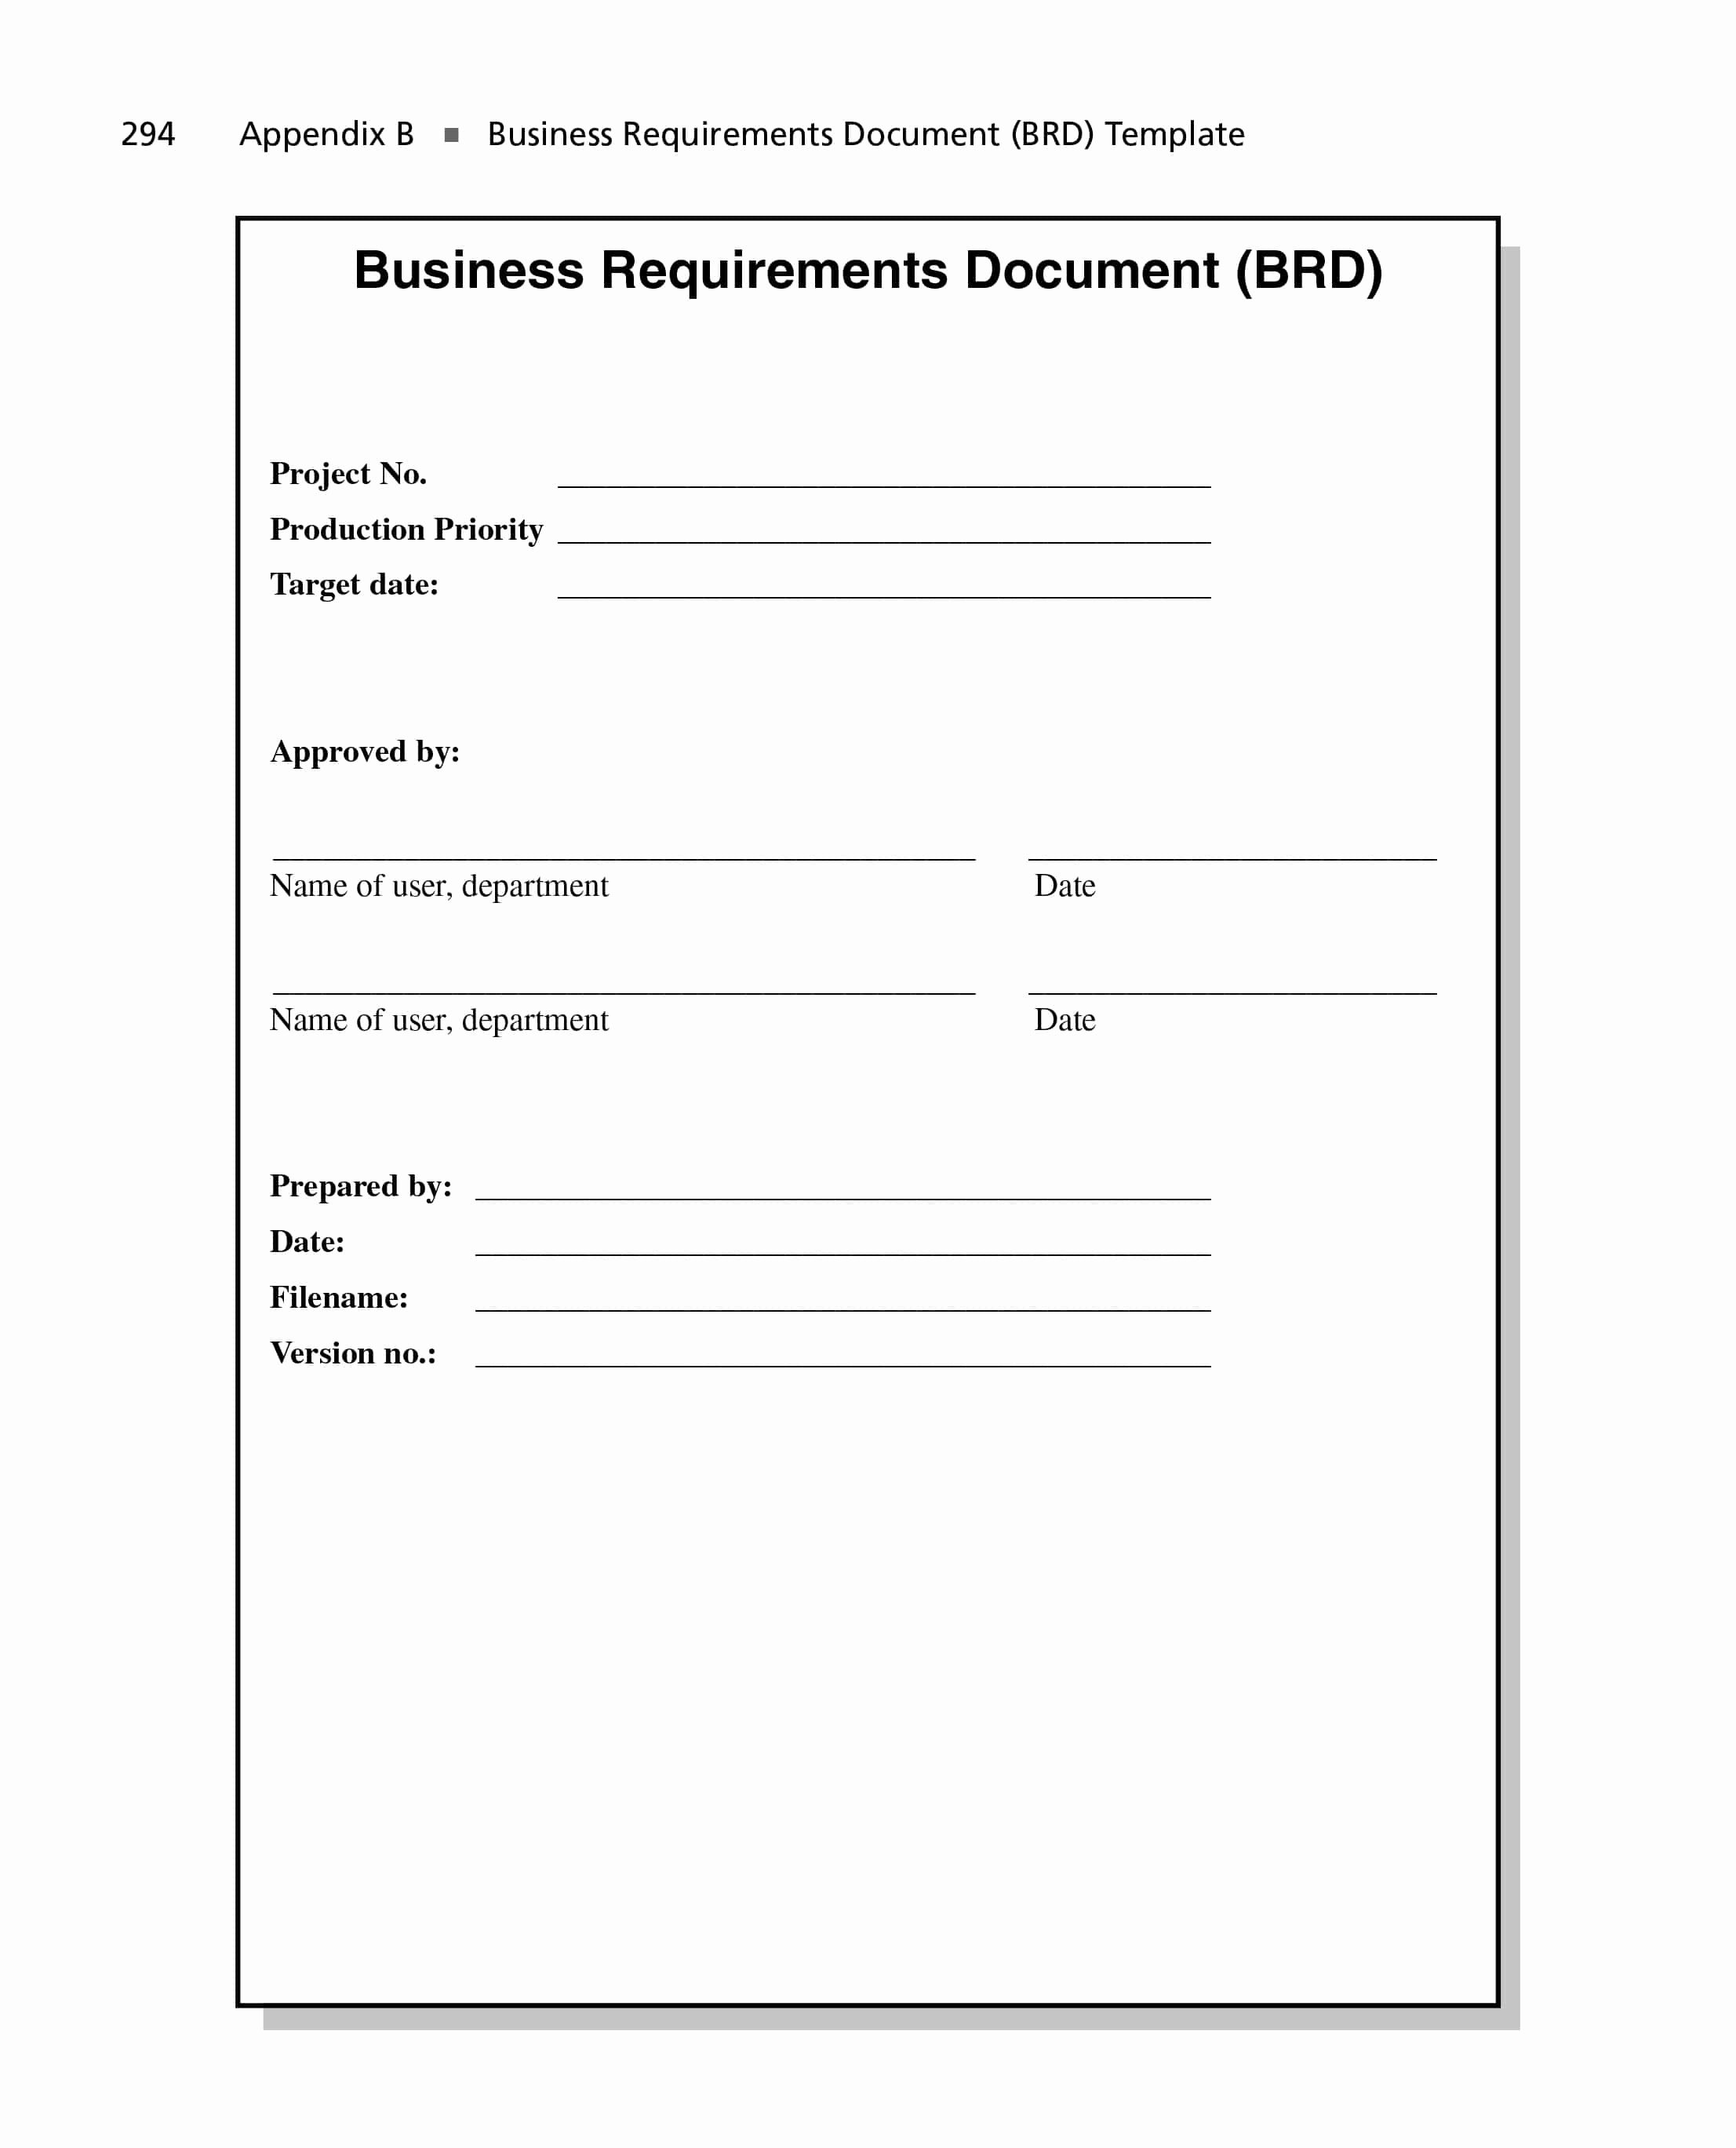 Business Requirements Document Template Luxury 40 Simple Business Requirements Document Templates